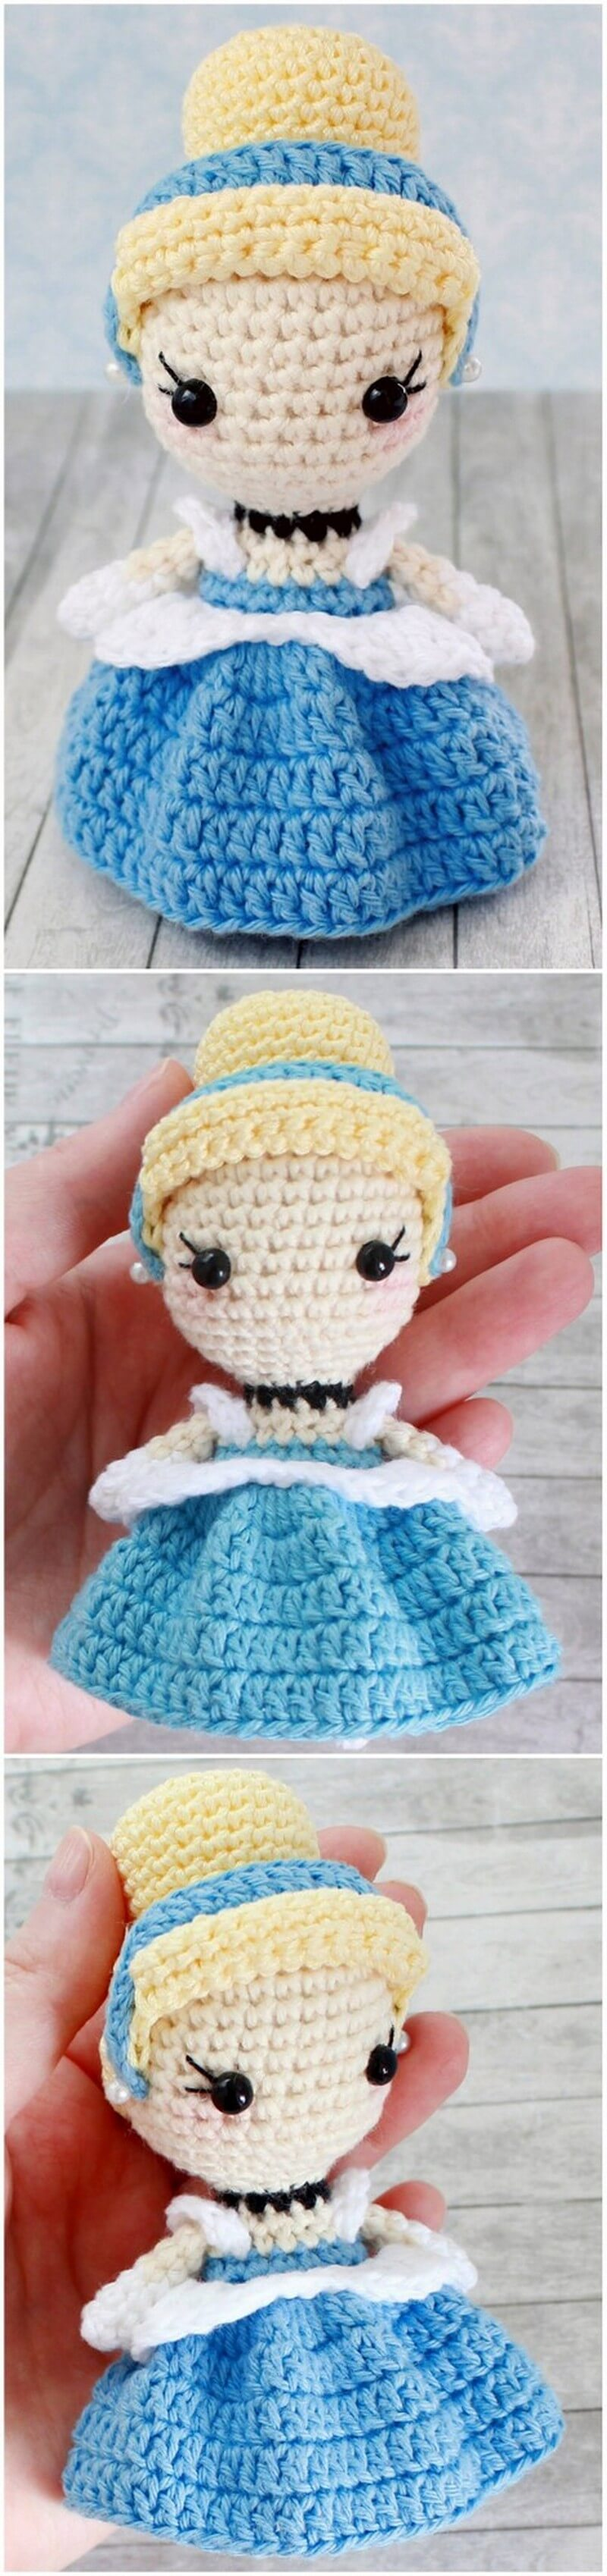 Crochet Amigurumi Doll Pattern (25)